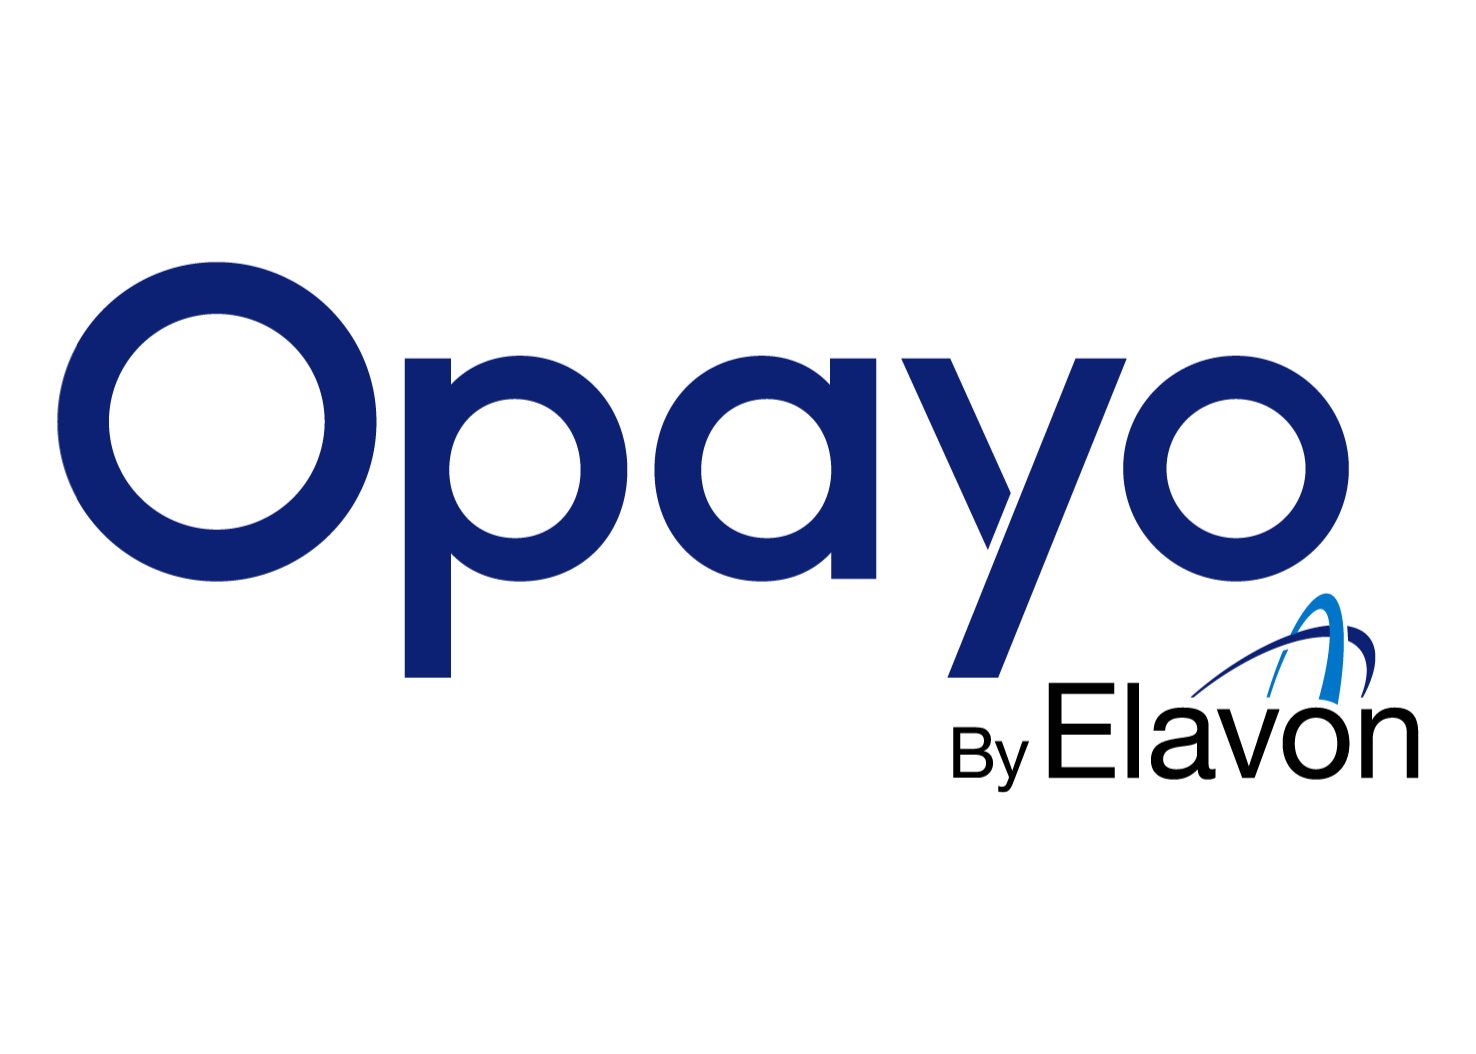 Payments are Secured by Opayo from Elavon